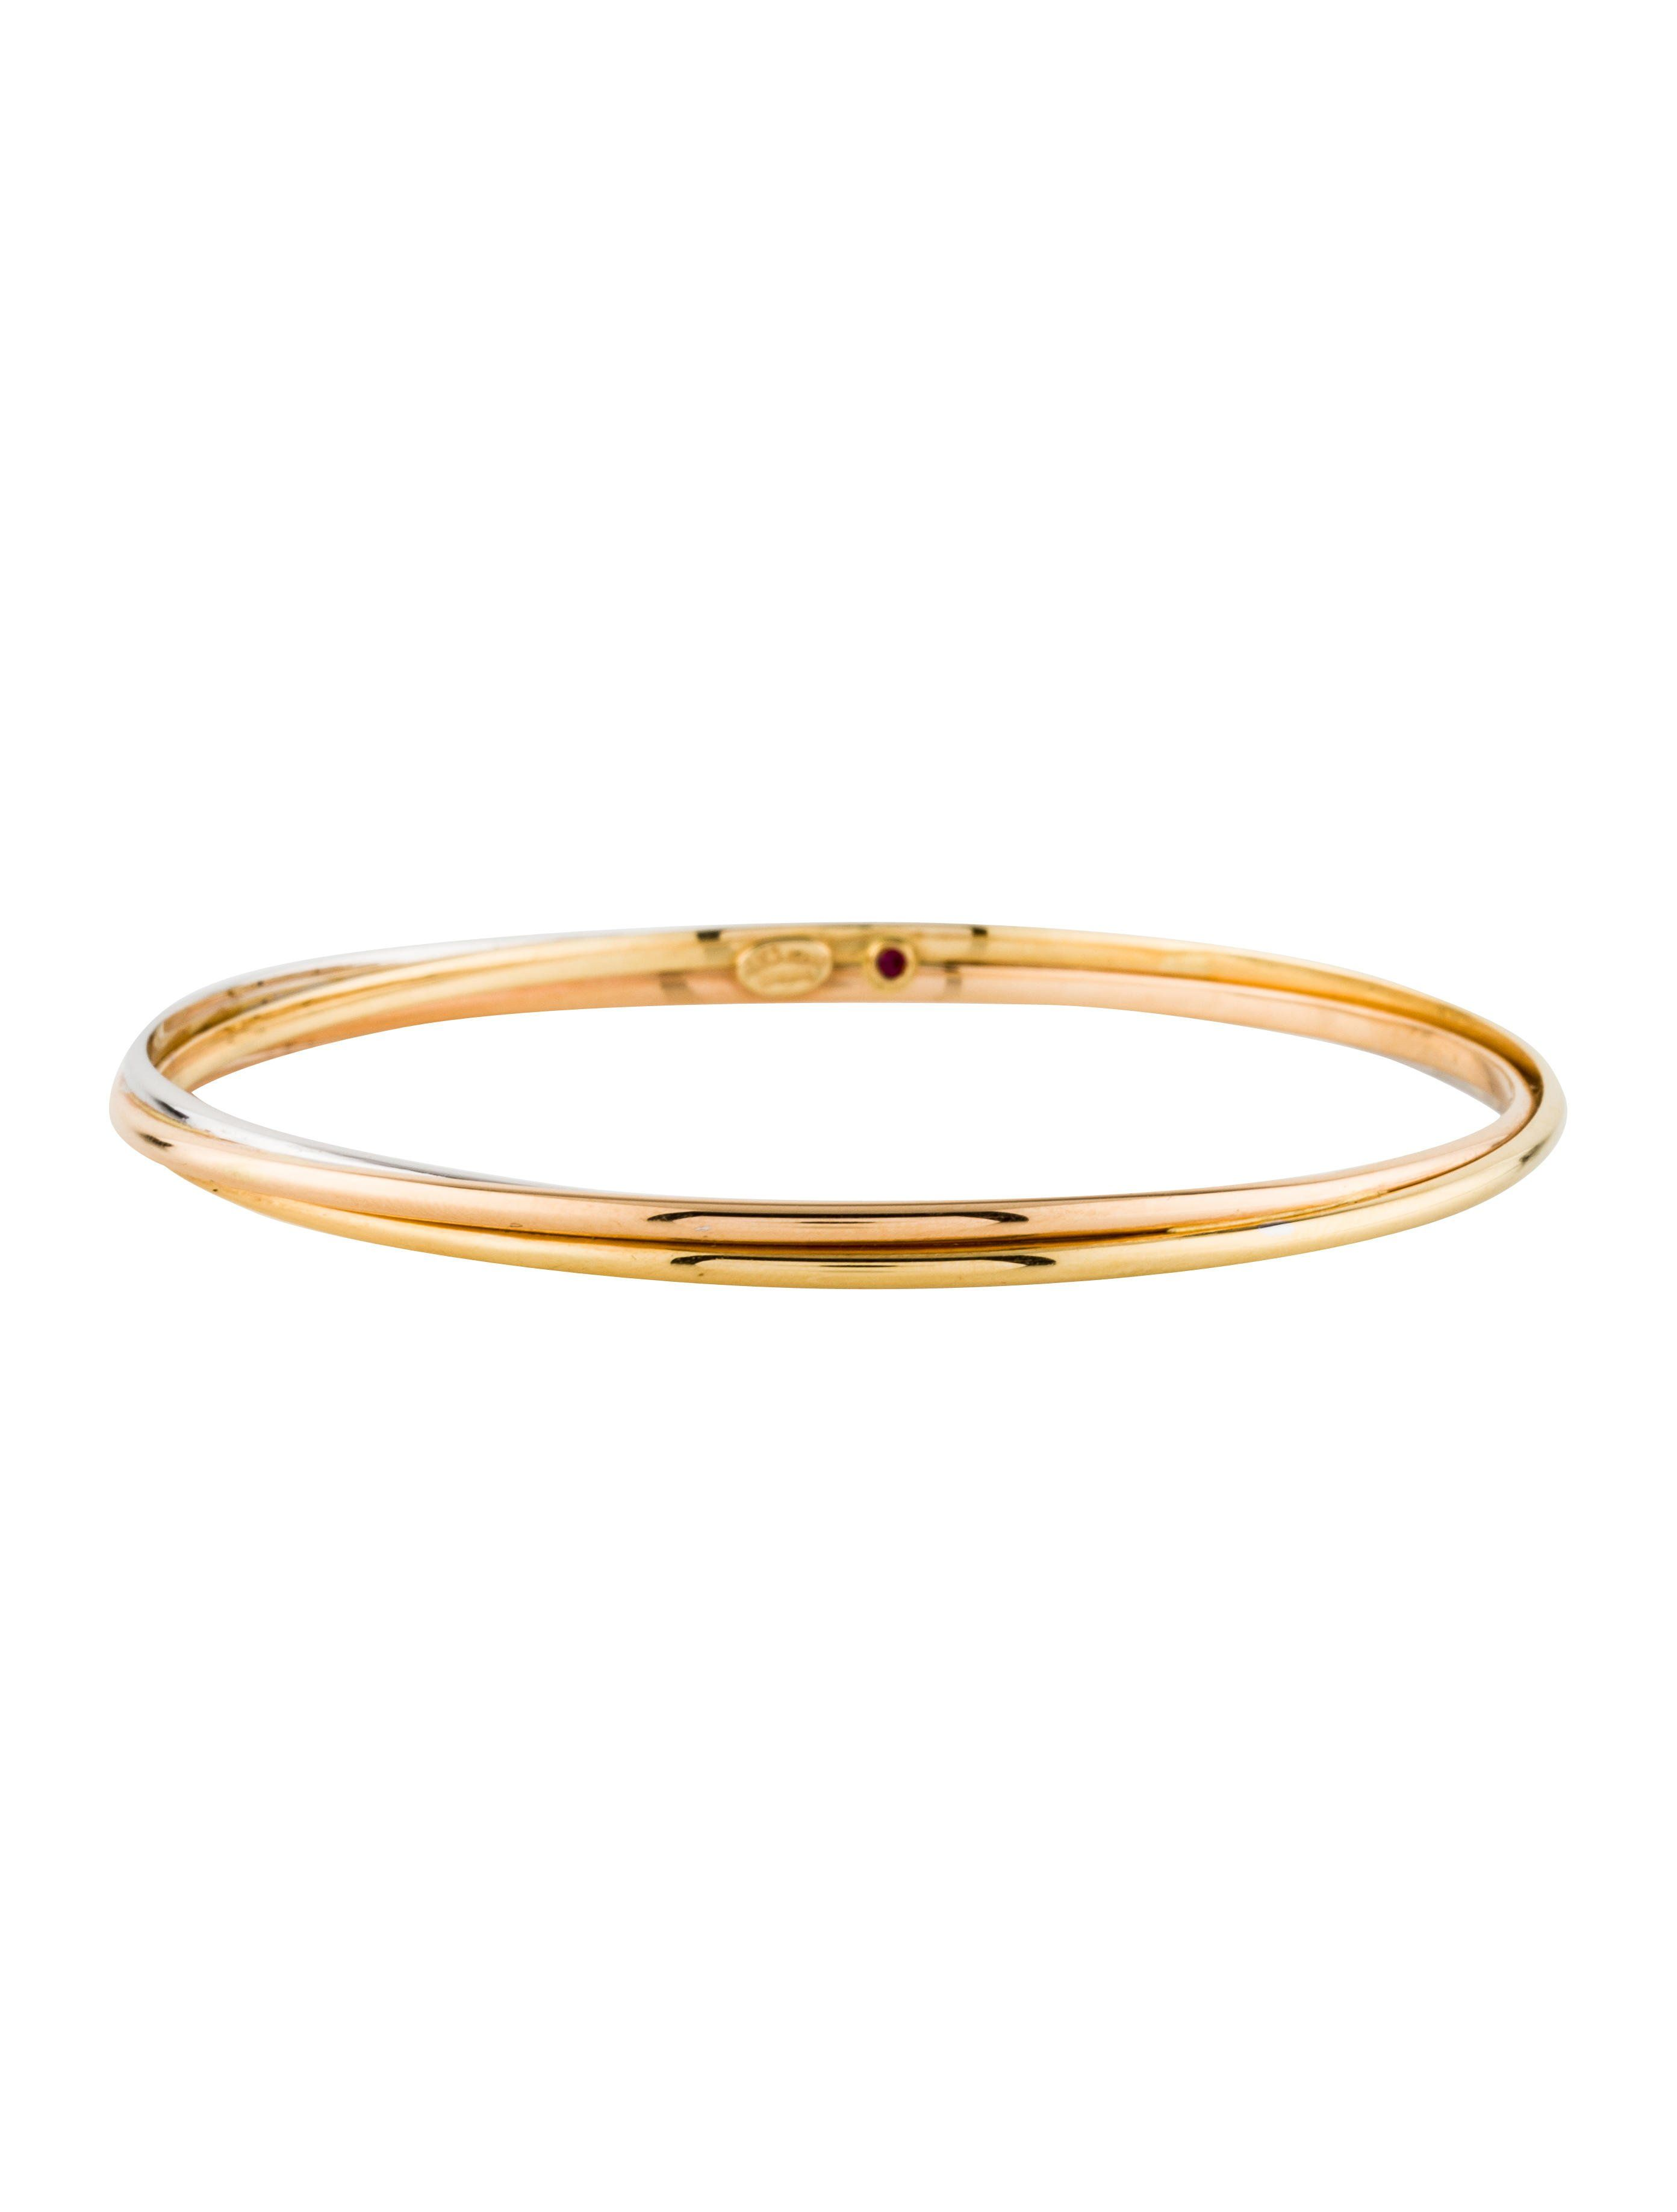 18K yellow, white and rose gold Roberto Coin Twist bangle ...